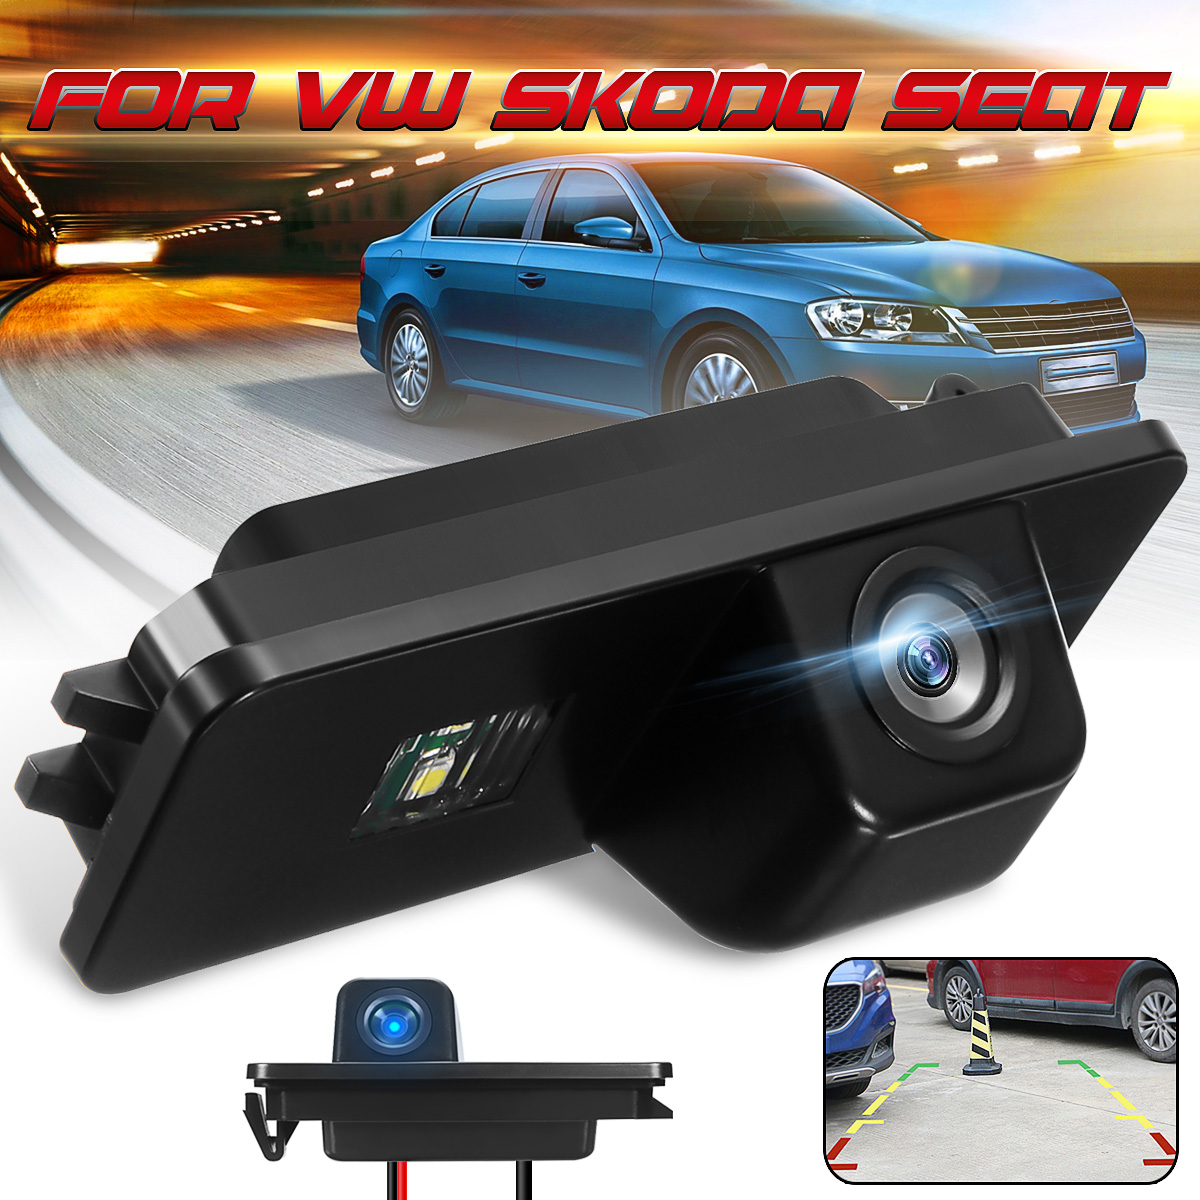 Car Rear View Reverse Camera For VW For Polo 2C Bora Golf MK4 MK5 MK6 Beetle Leon Backup Rearview Parking